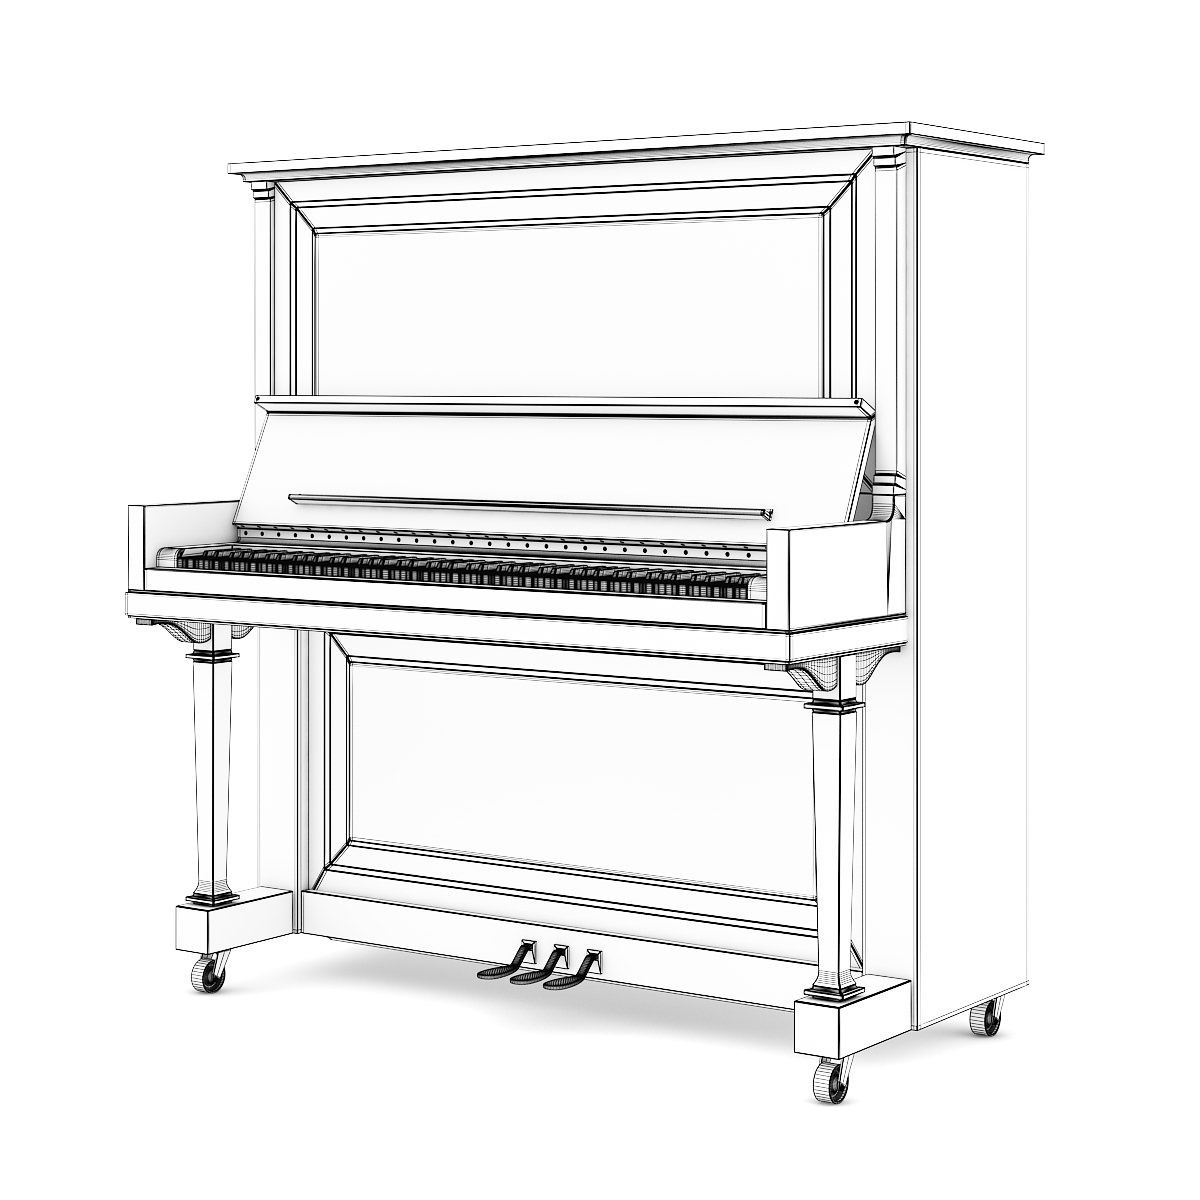 Upright Piano Dimensions   Piano Keys   Upright Piano CartoonUpright Piano Cartoon